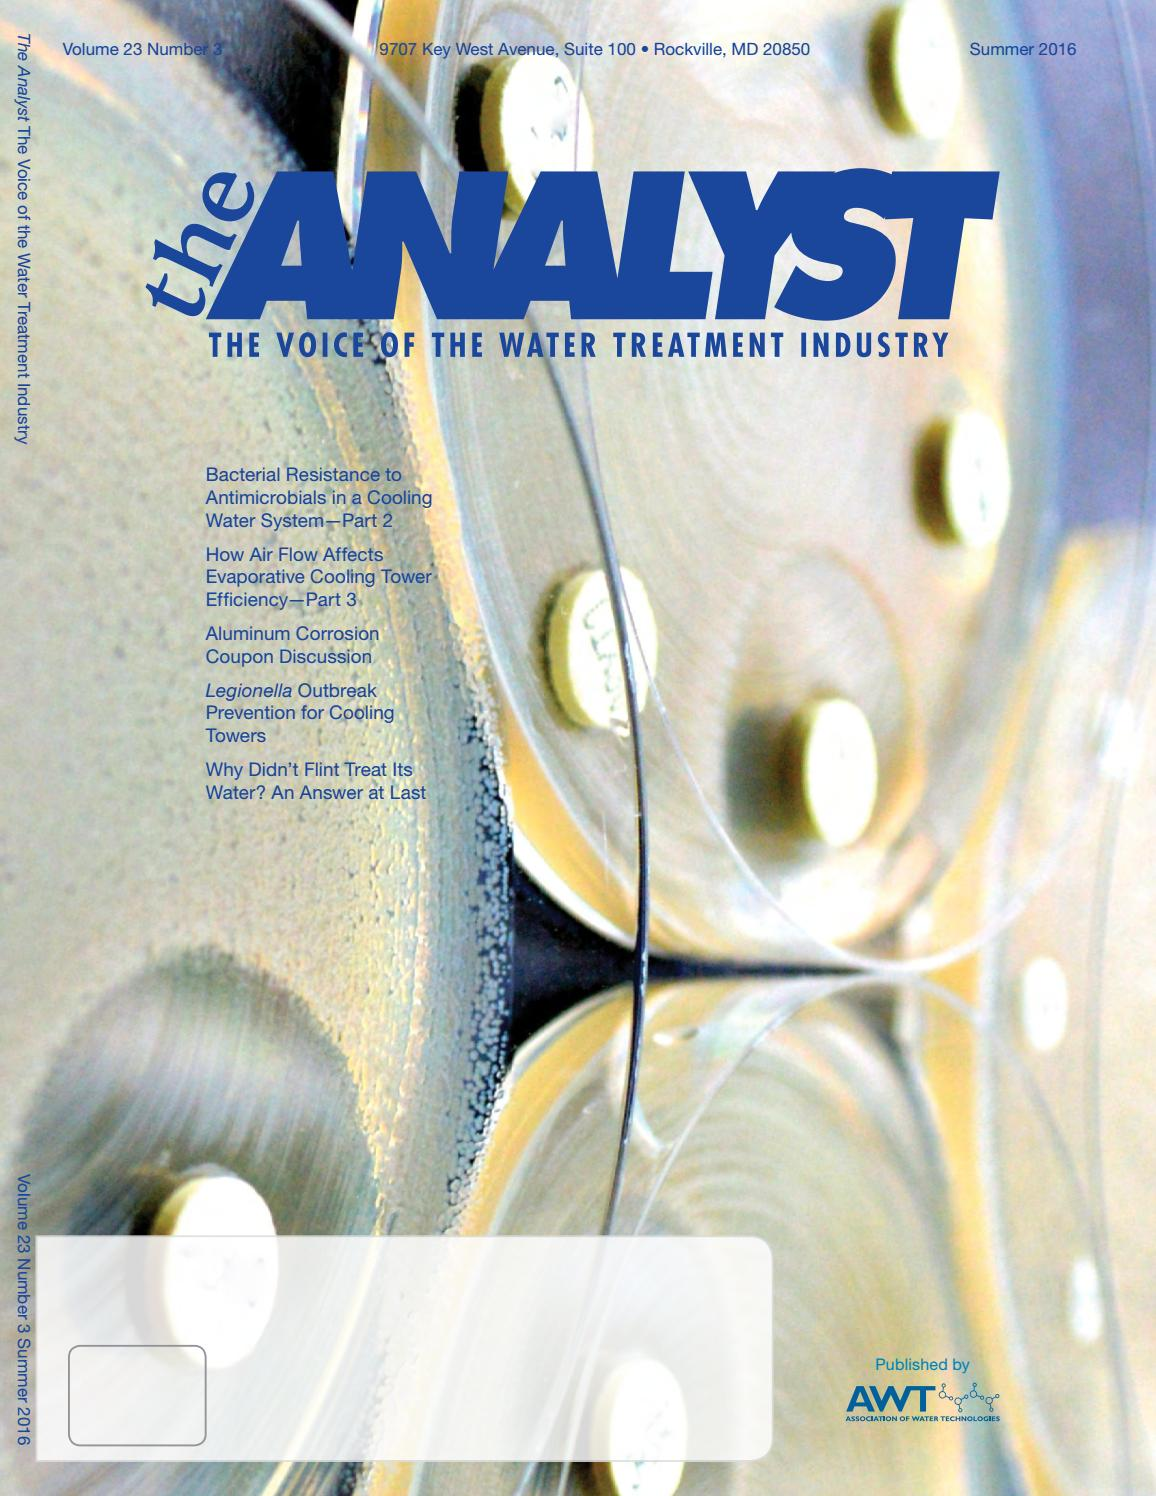 Awt analyst summer 16 by Association of Water Technologies